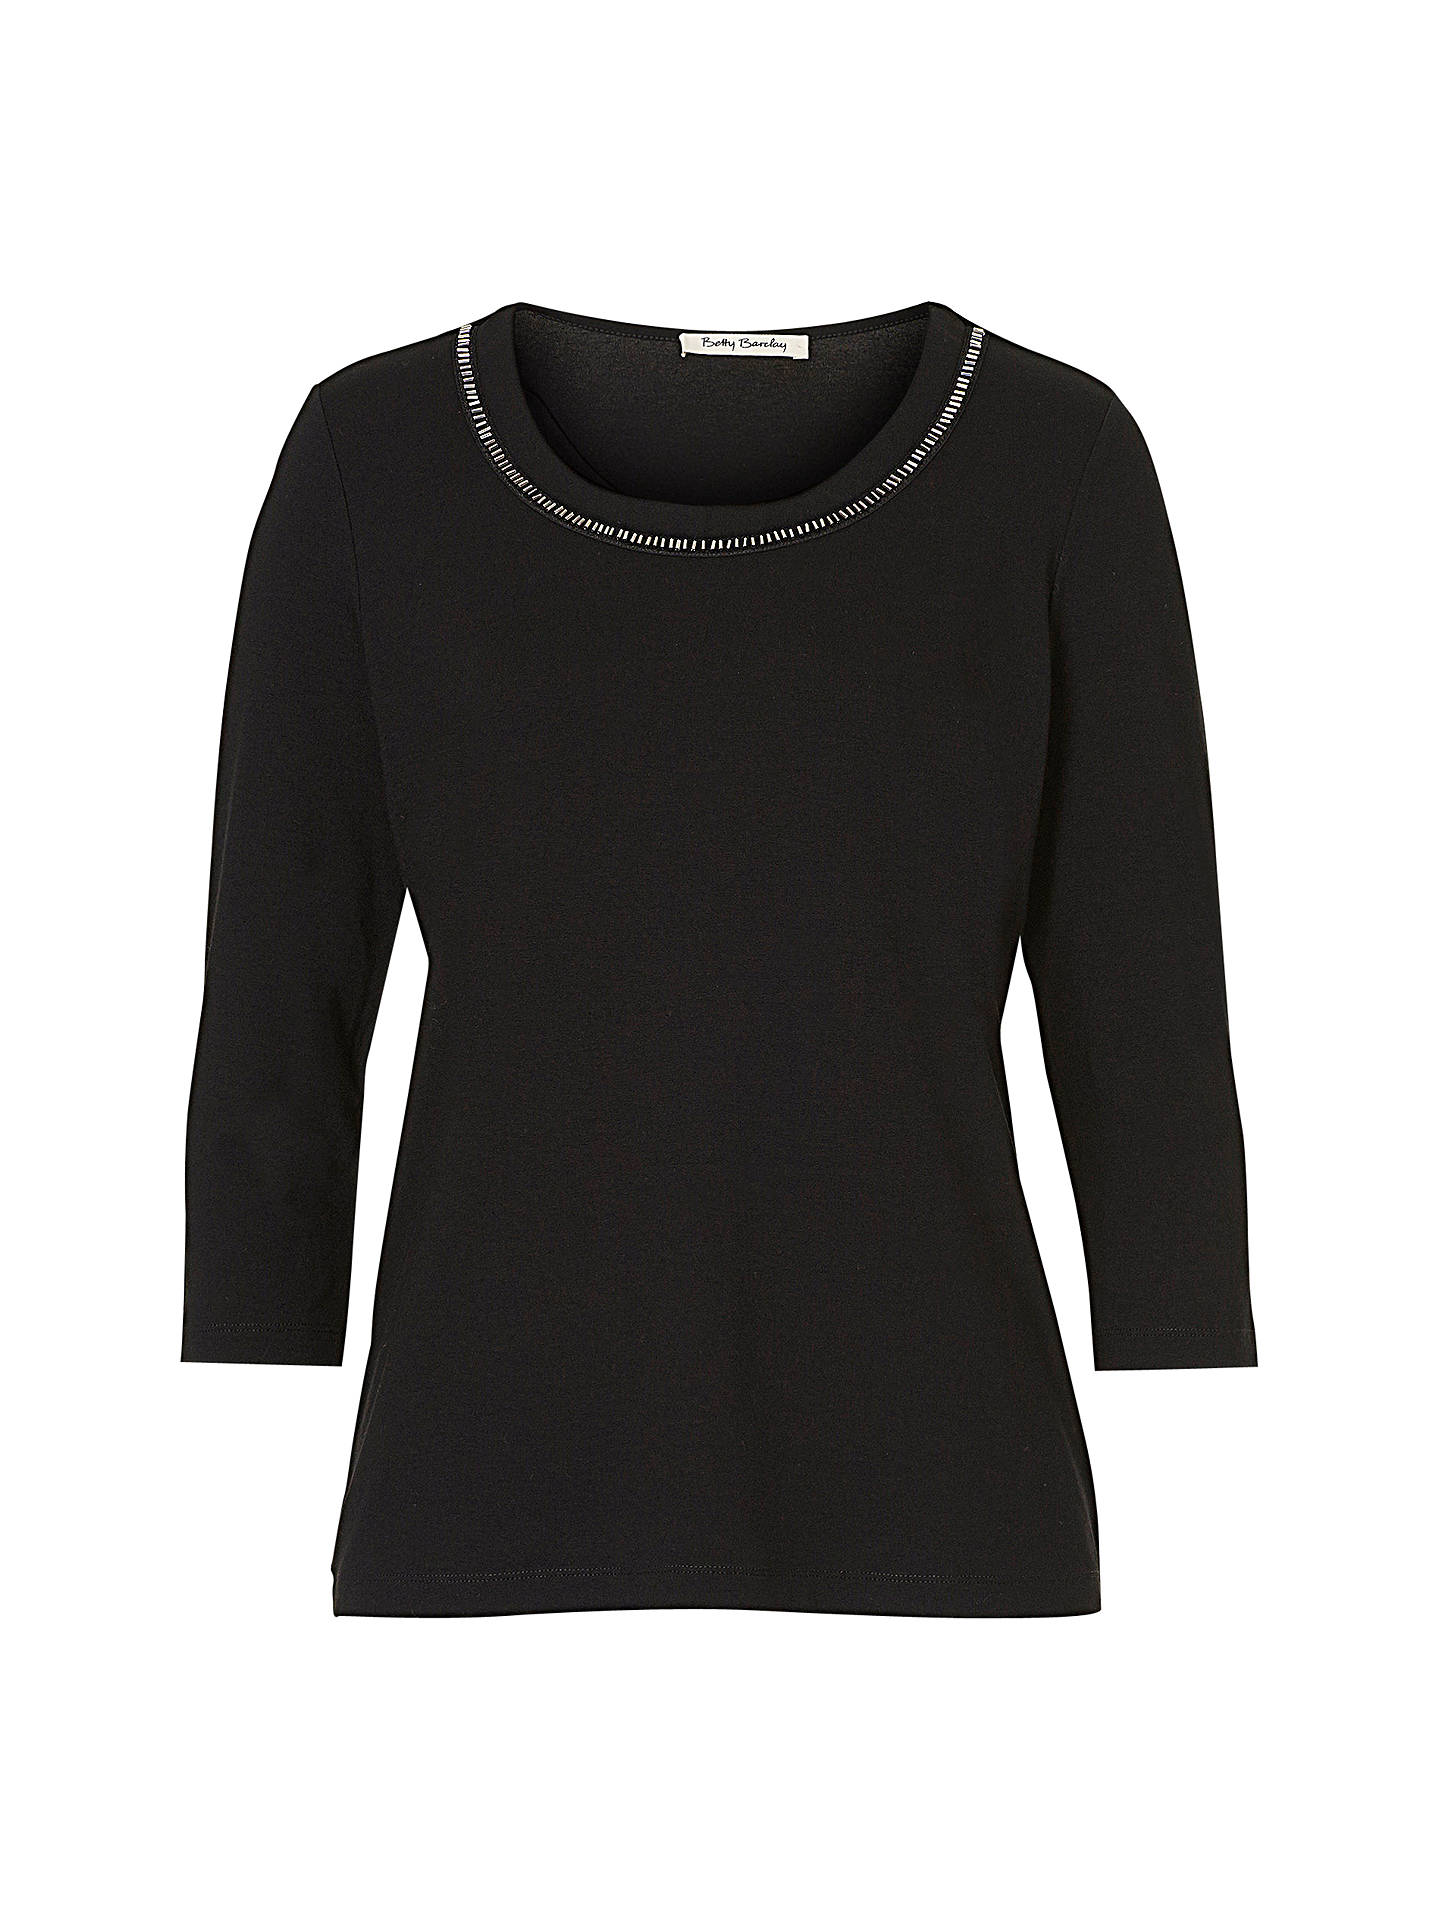 BuyBetty Barclay Embellished T-Shirt, Black, 8 Online at johnlewis.com